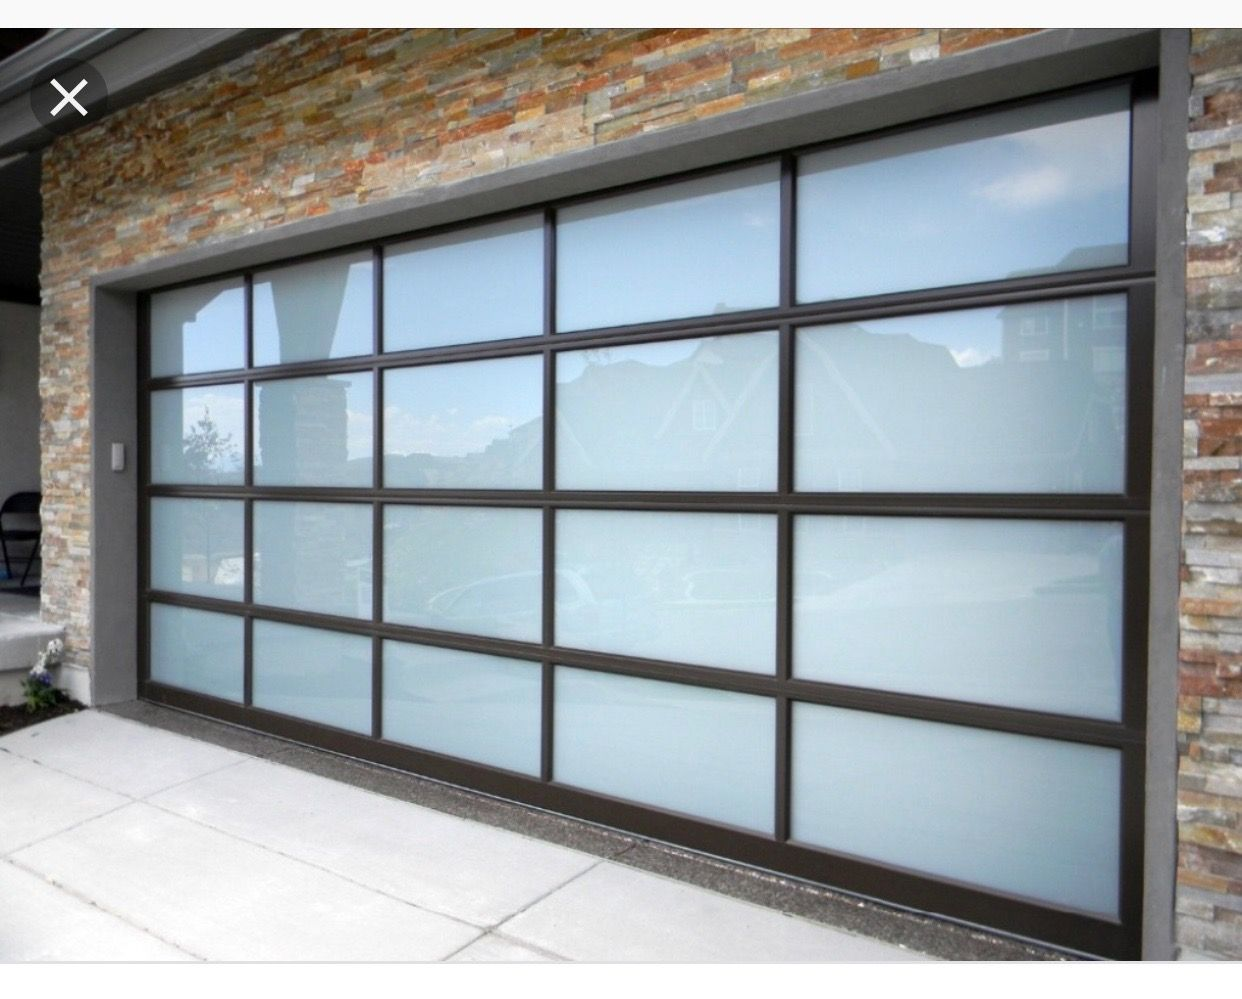 Pin By Brooklyn Phillips On Exterior Garage Doors Glass Garage Door Garage Door Styles